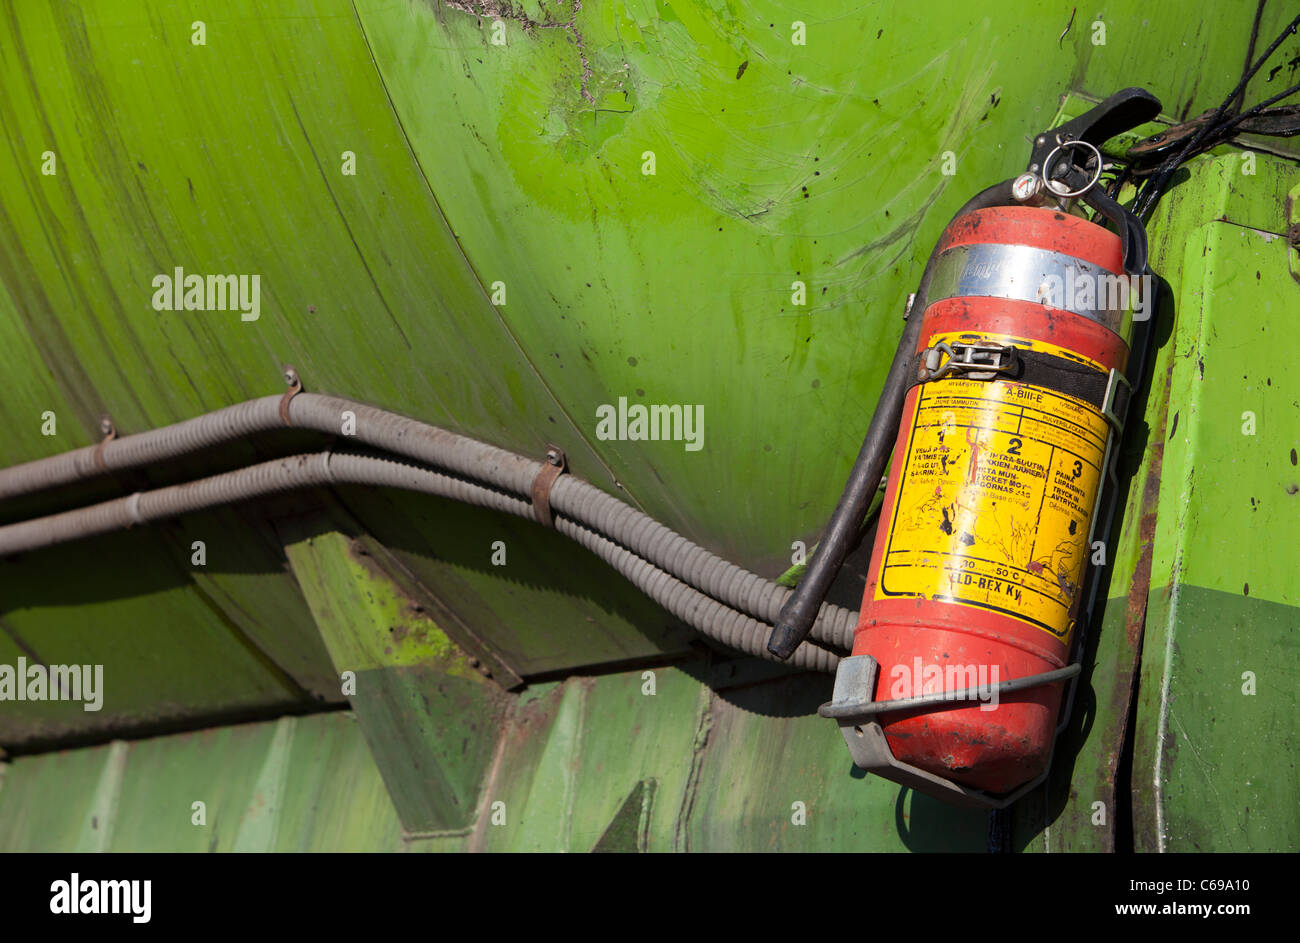 Old scuffed fire extinguisher - Stock Image